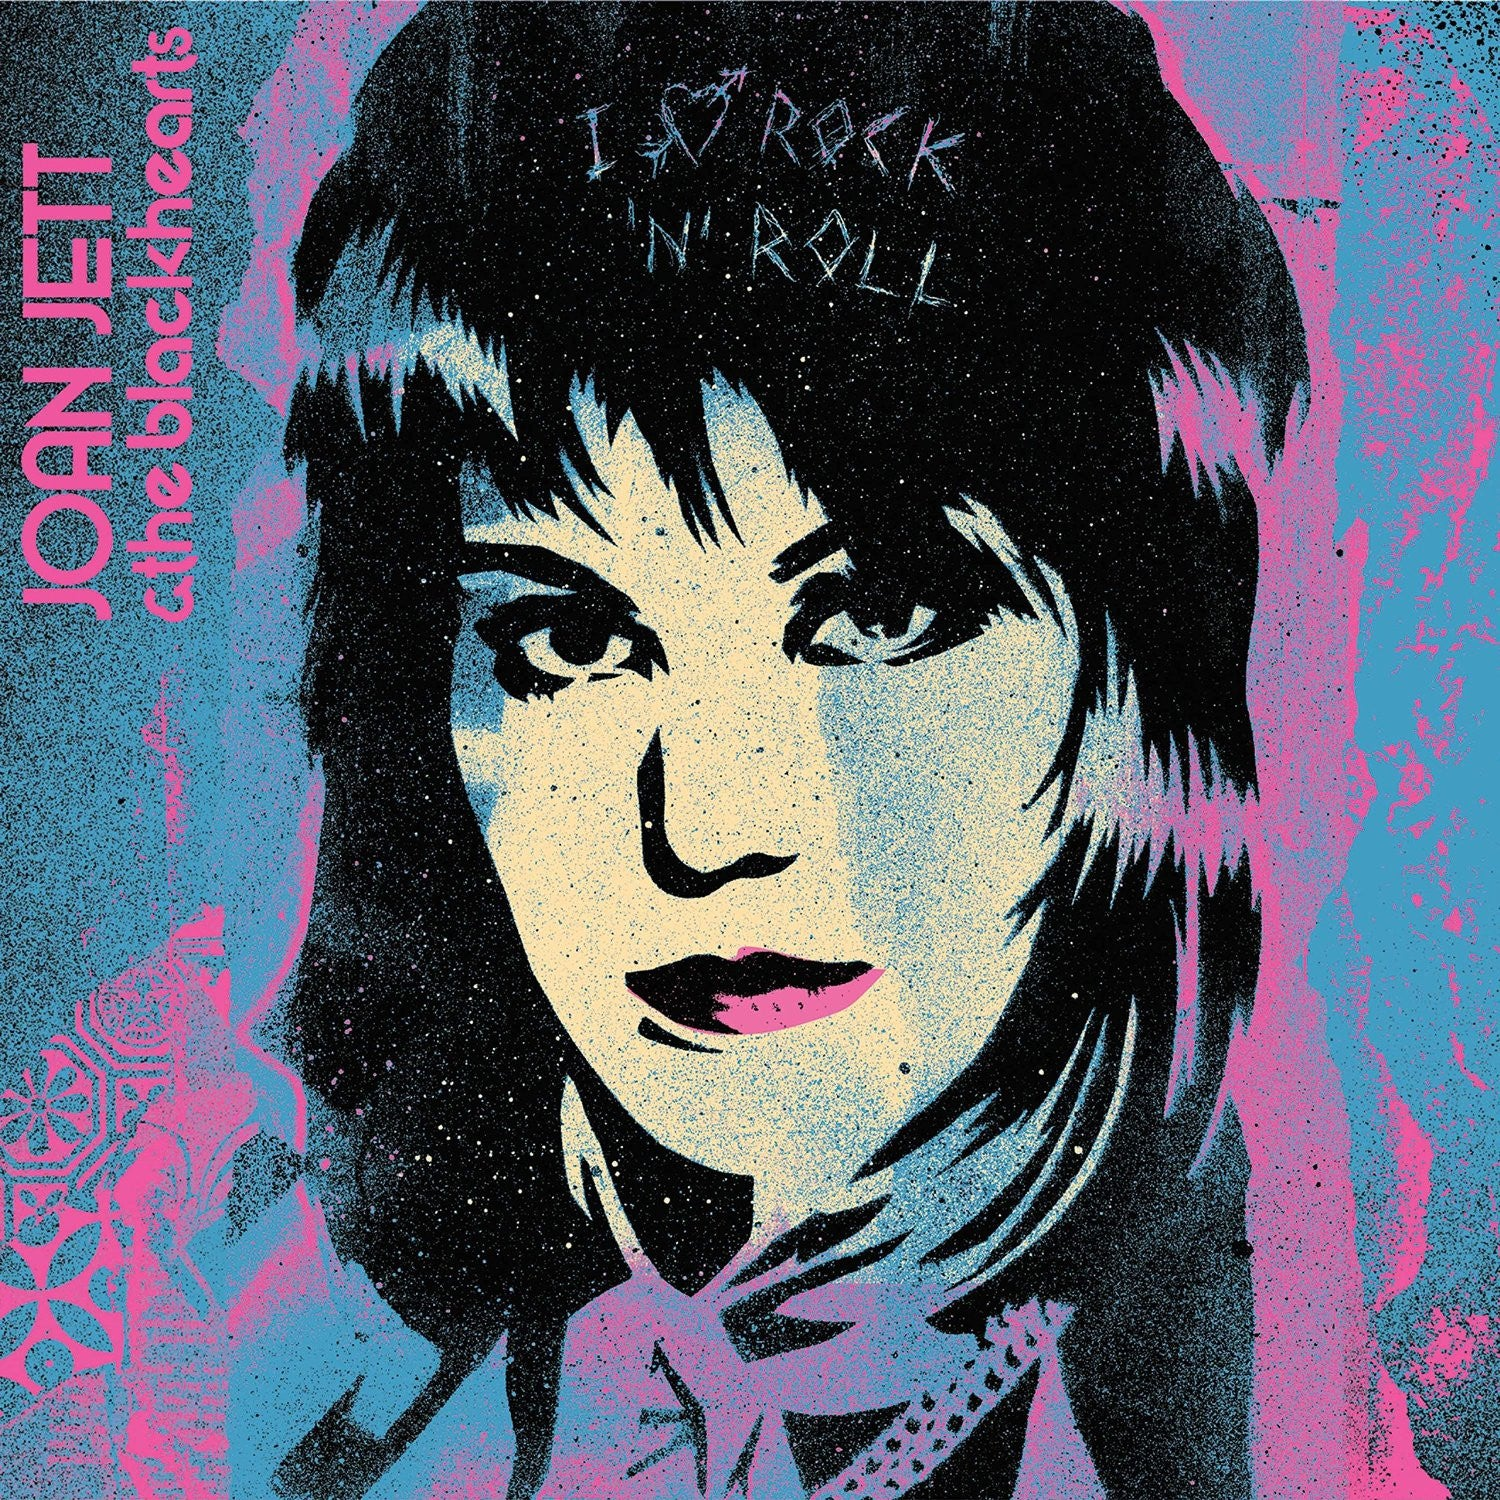 Joan Jett & The BlackHearts - I Love Rock 'N' Roll 33 1/3 Anniversary Edition 2xLP + Poster